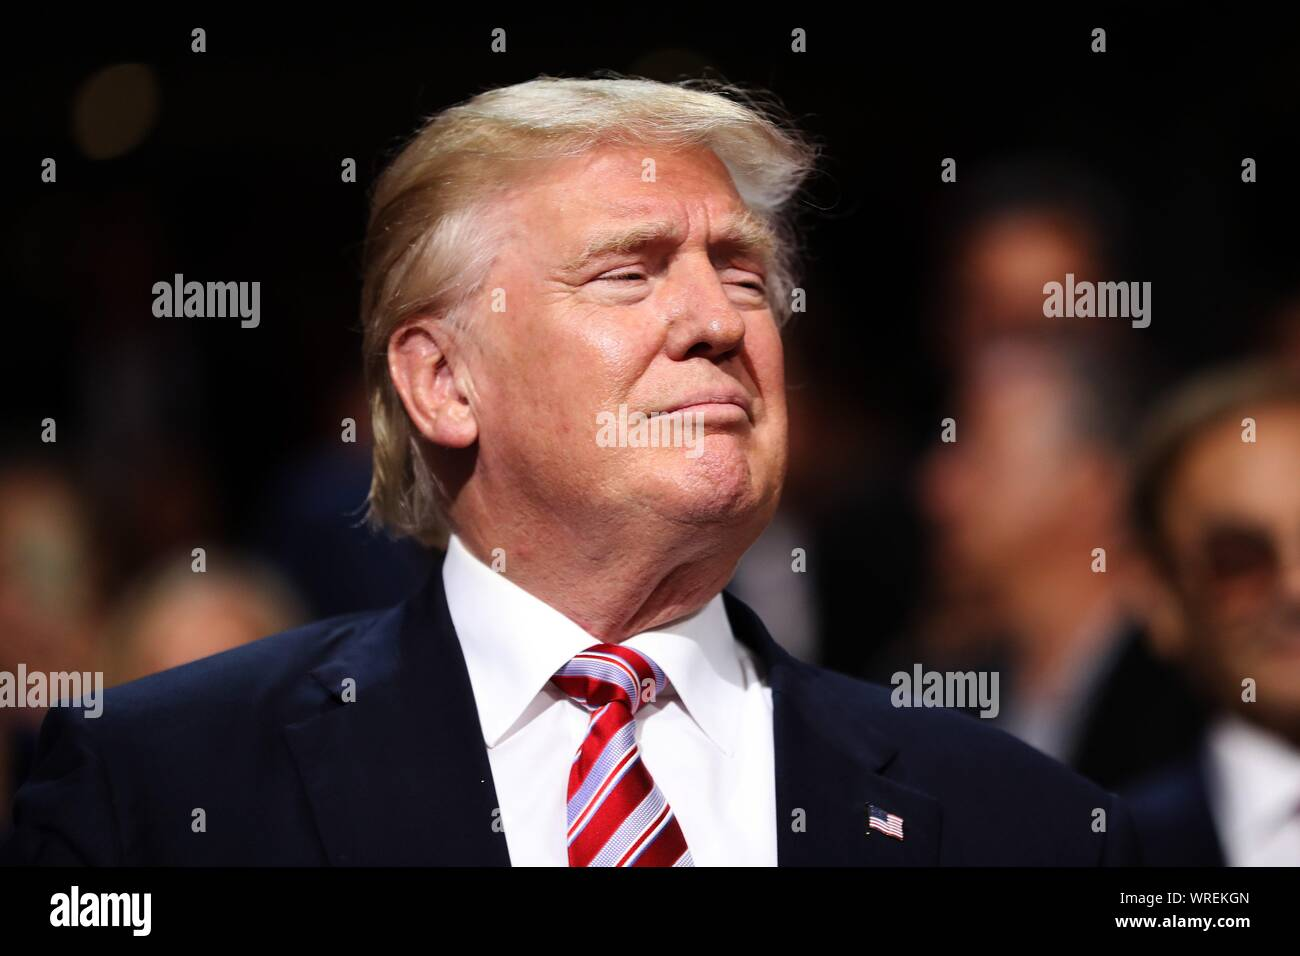 CLEVELAND, OH - JULY 20, 2016: Republican presidential candidate Donald Trump attends the third day of the Republican National Convention. Stock Photo